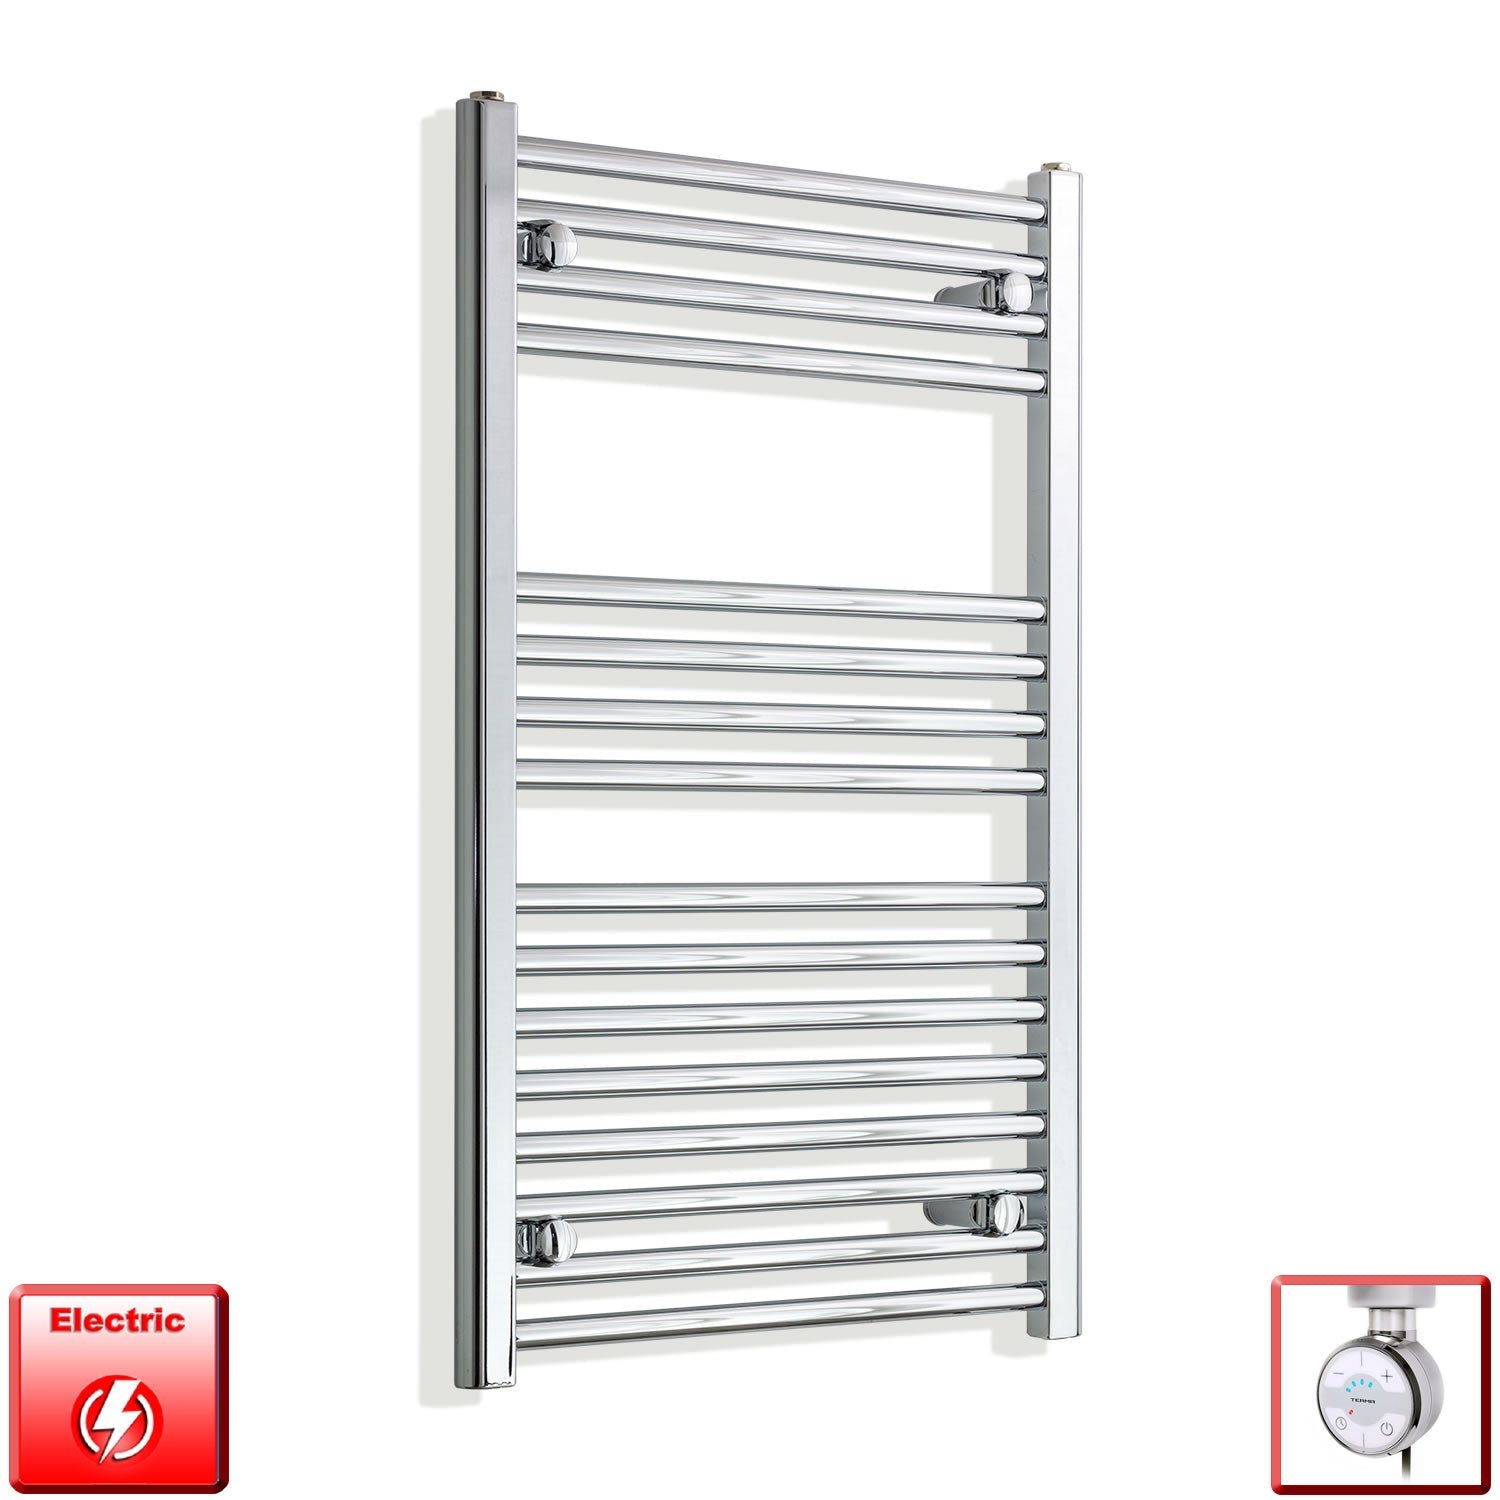 550mm Wide 900mm High Pre-Filled Chrome Electric Towel Rail Radiator With Thermostatic MOA Element